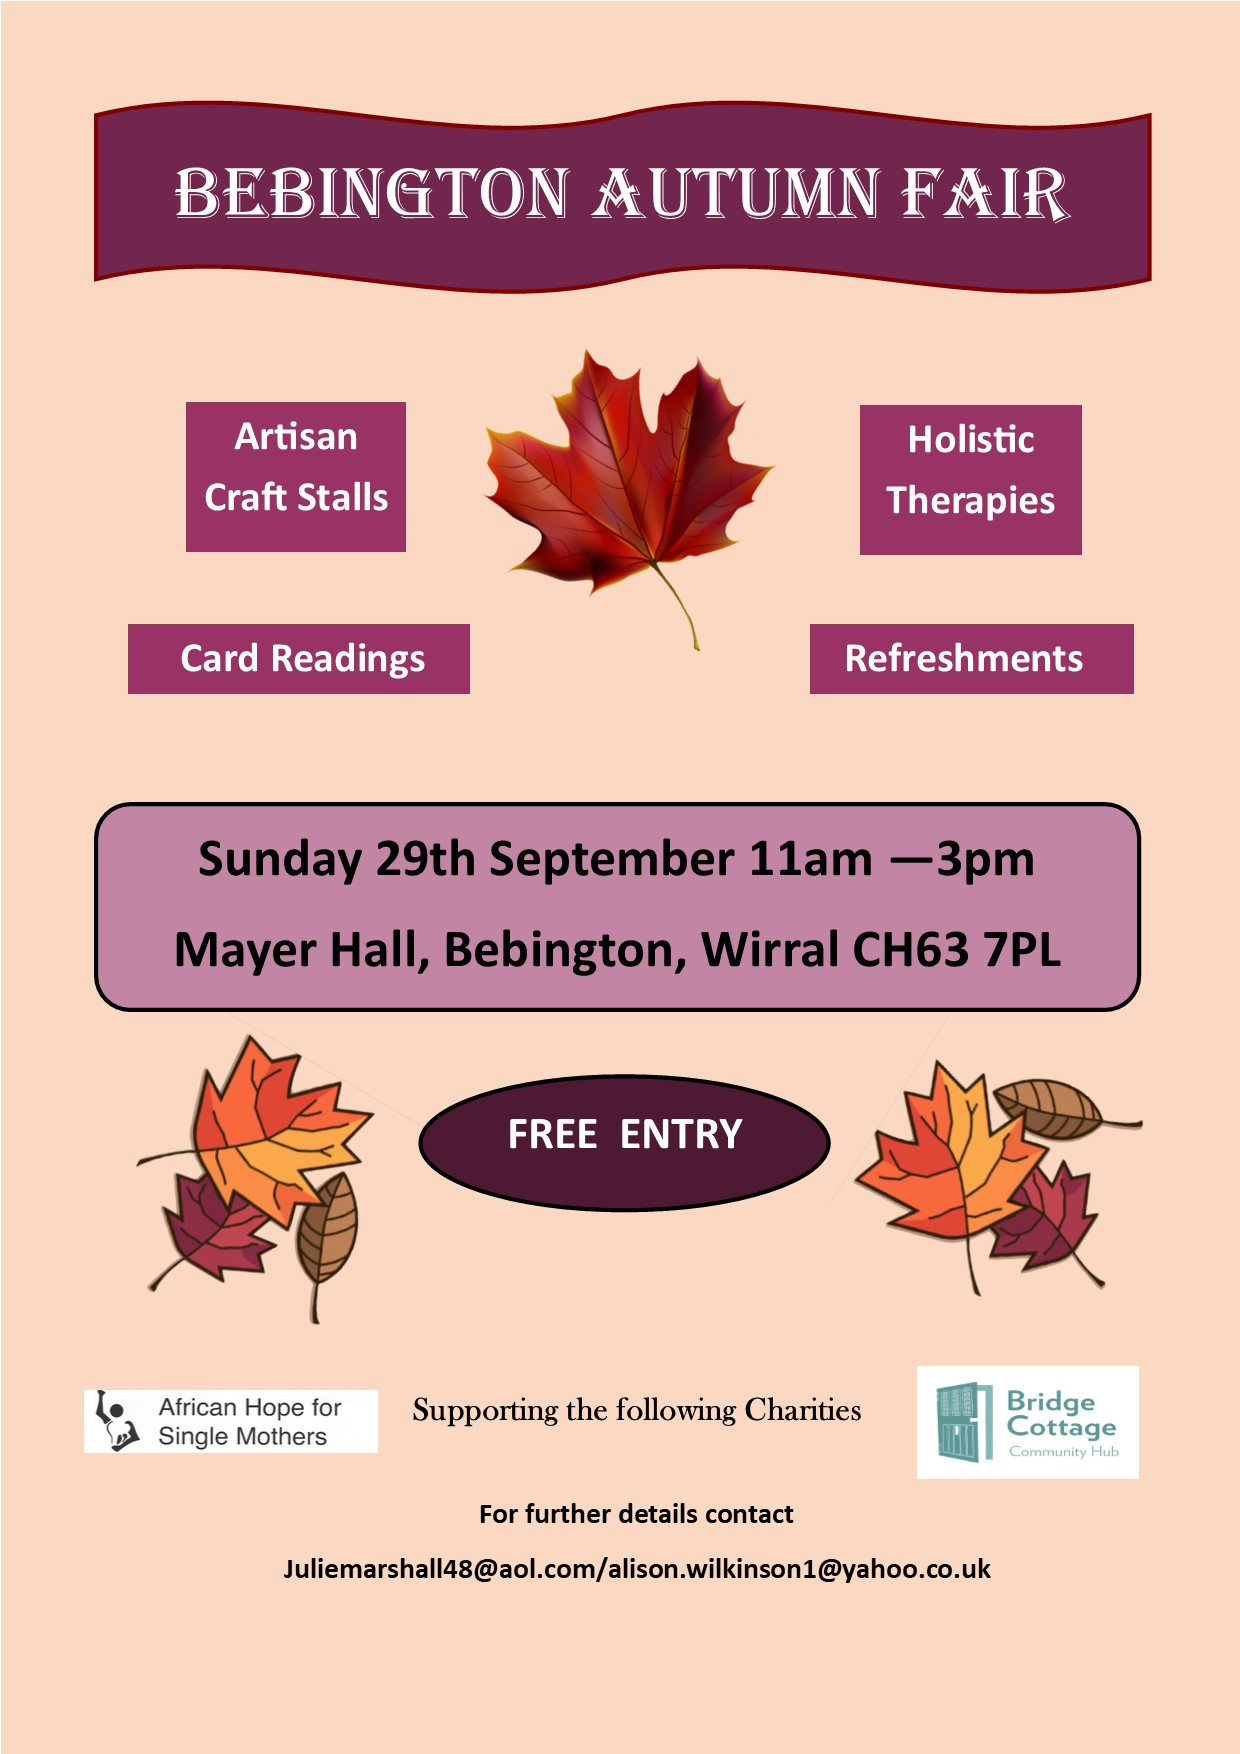 Bebington Autumn Fair